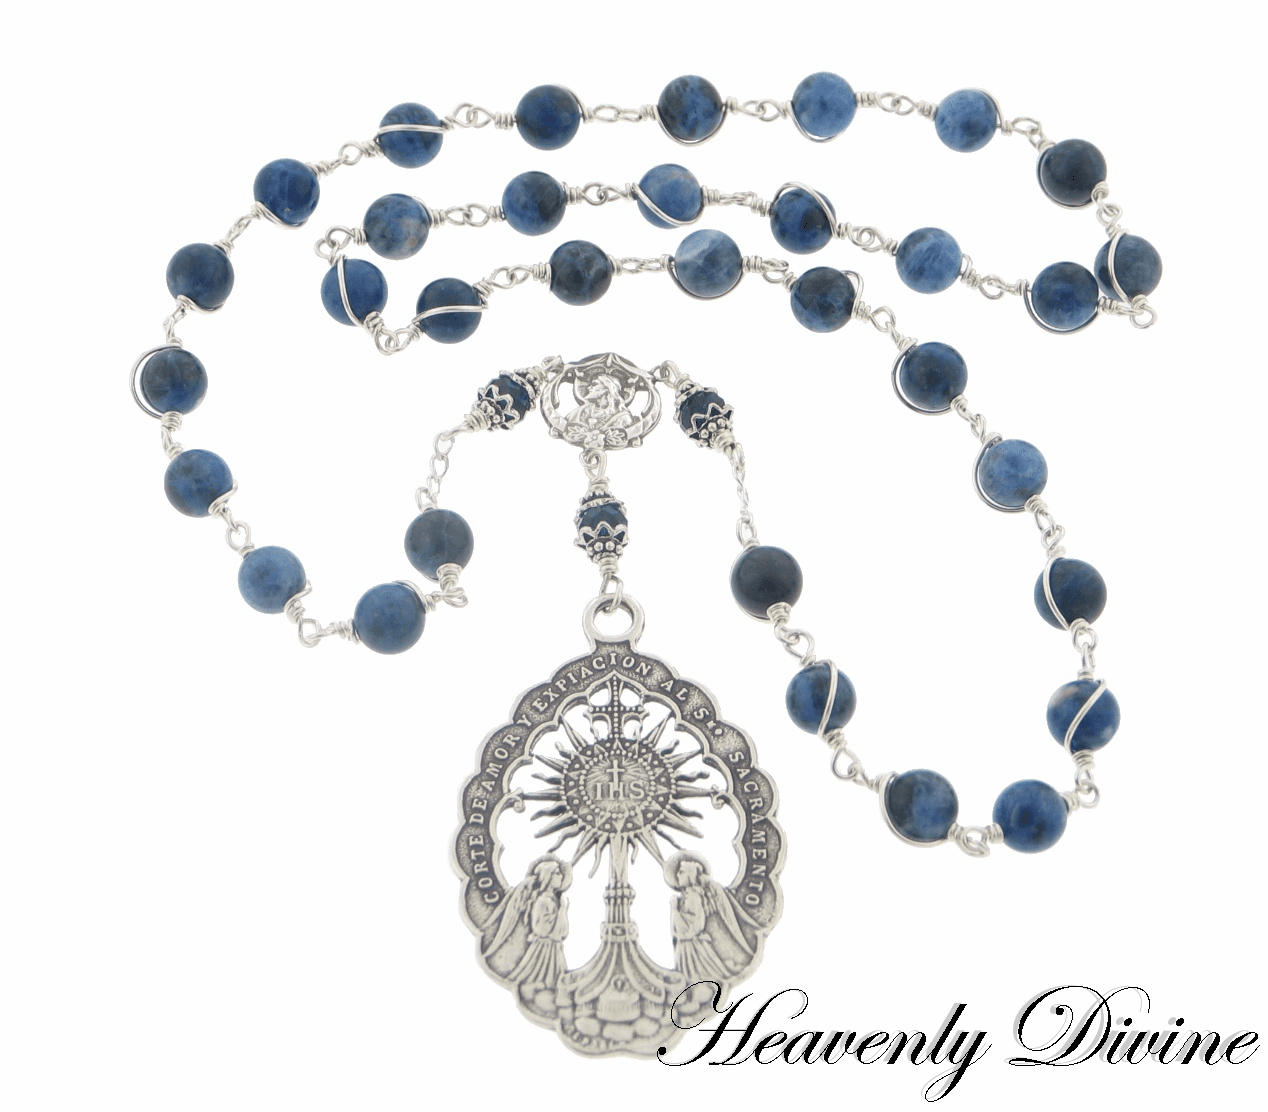 Handmade Beads of the Blessed Sacrament Chaplet by Heavenly Divine